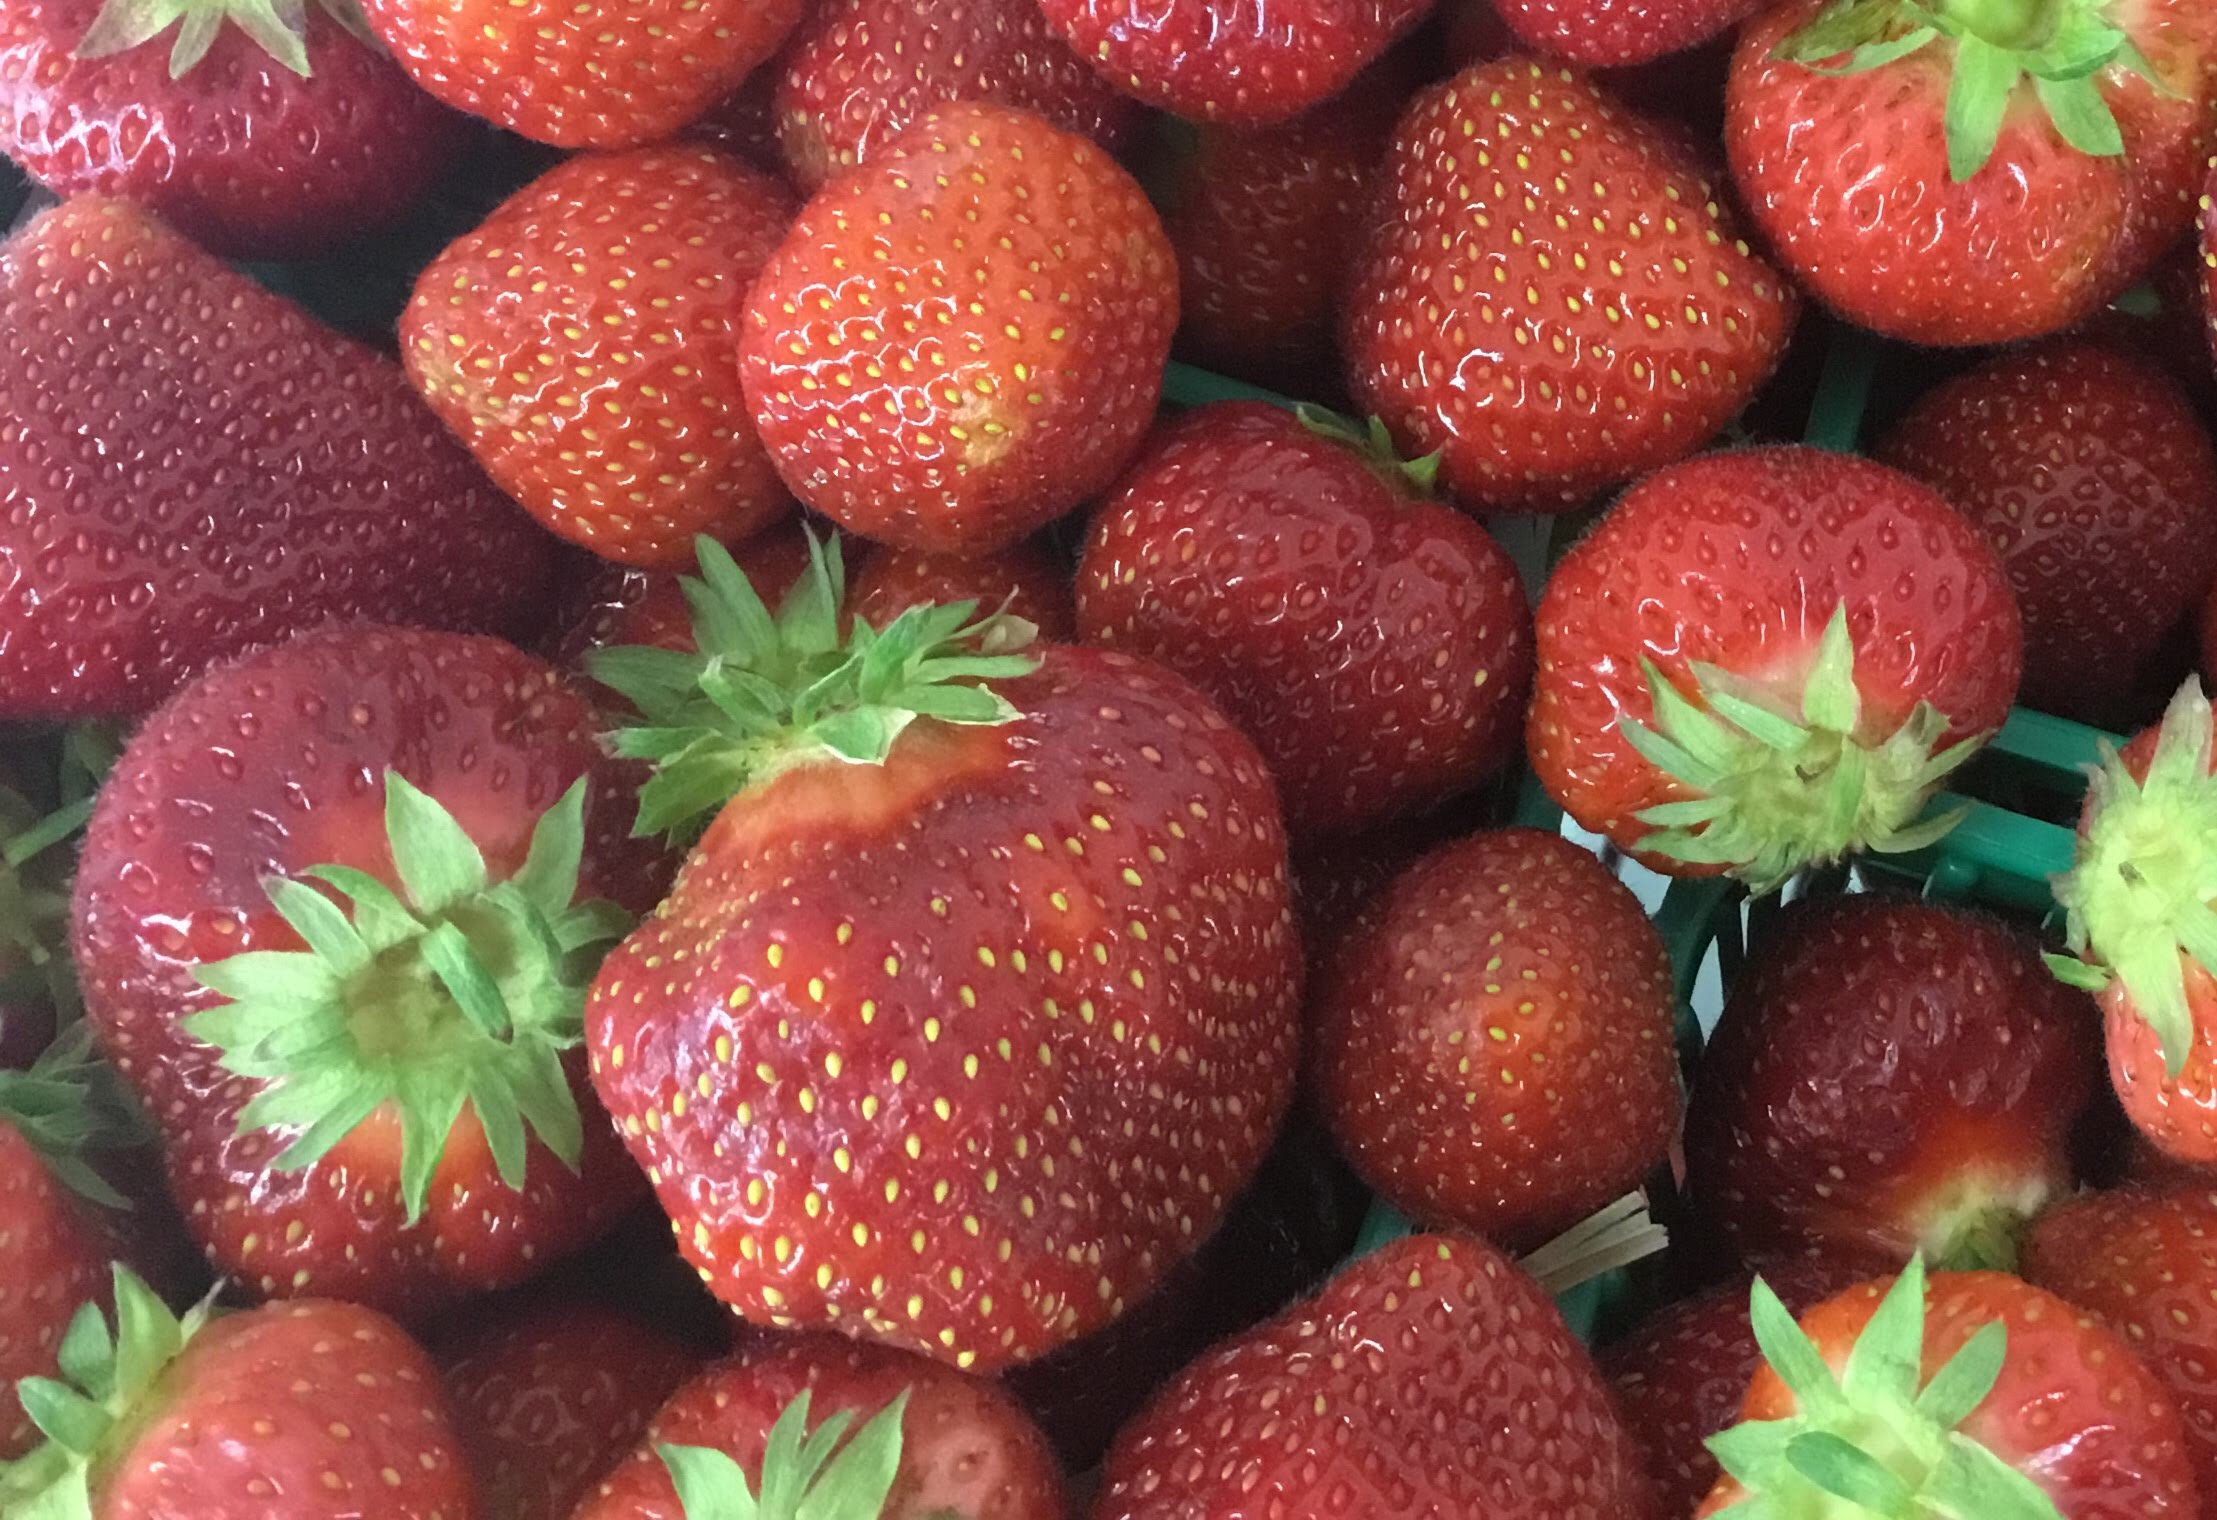 U-Pick Strawberries - Our U-Pick strawberry fields are a long-standing tradition for locals and cottage-goers. Fun for the whole family. Hours: Closed for the season